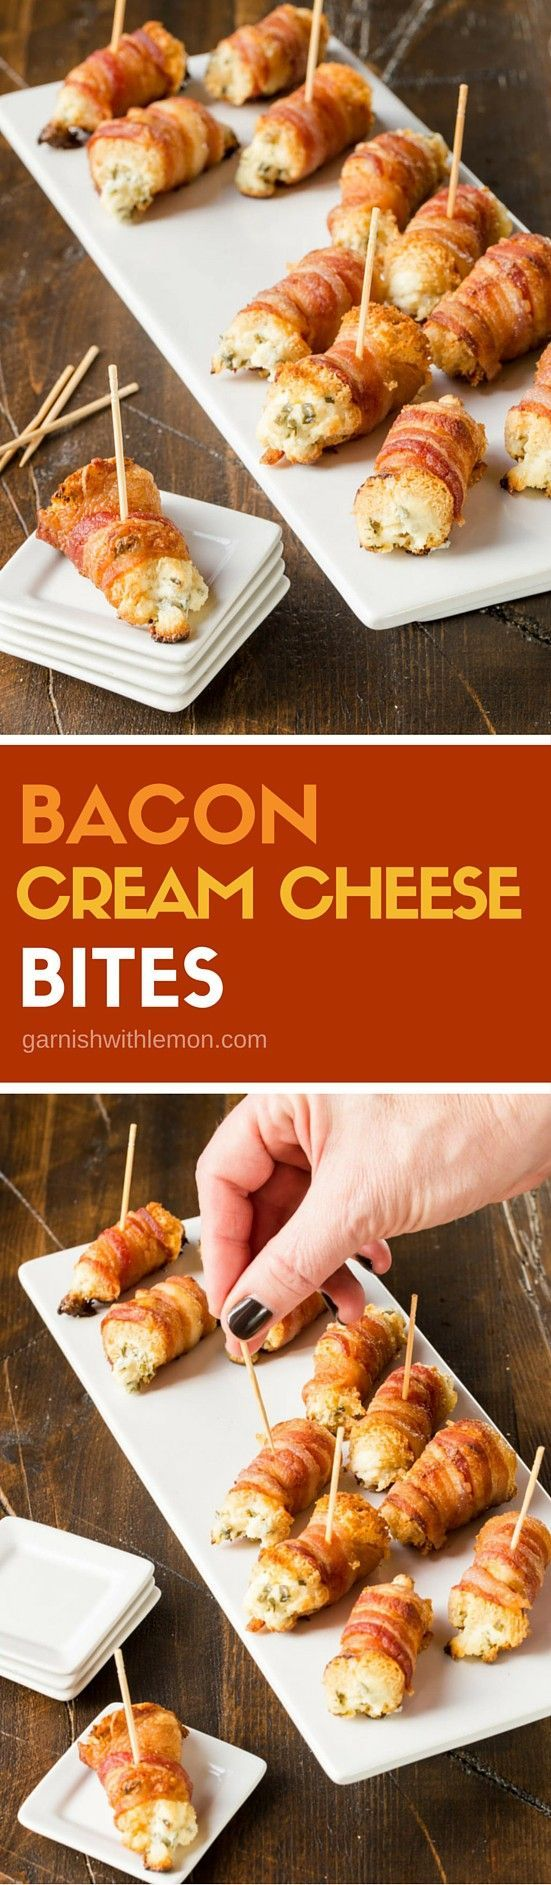 Filled with cream cheese and chives, these Crispy Bacon Cream Cheese Bites are showstopping appetizers at any party! NOTE: be sure to use WB compliant bread (low carb) instead of the bread in this recipe.